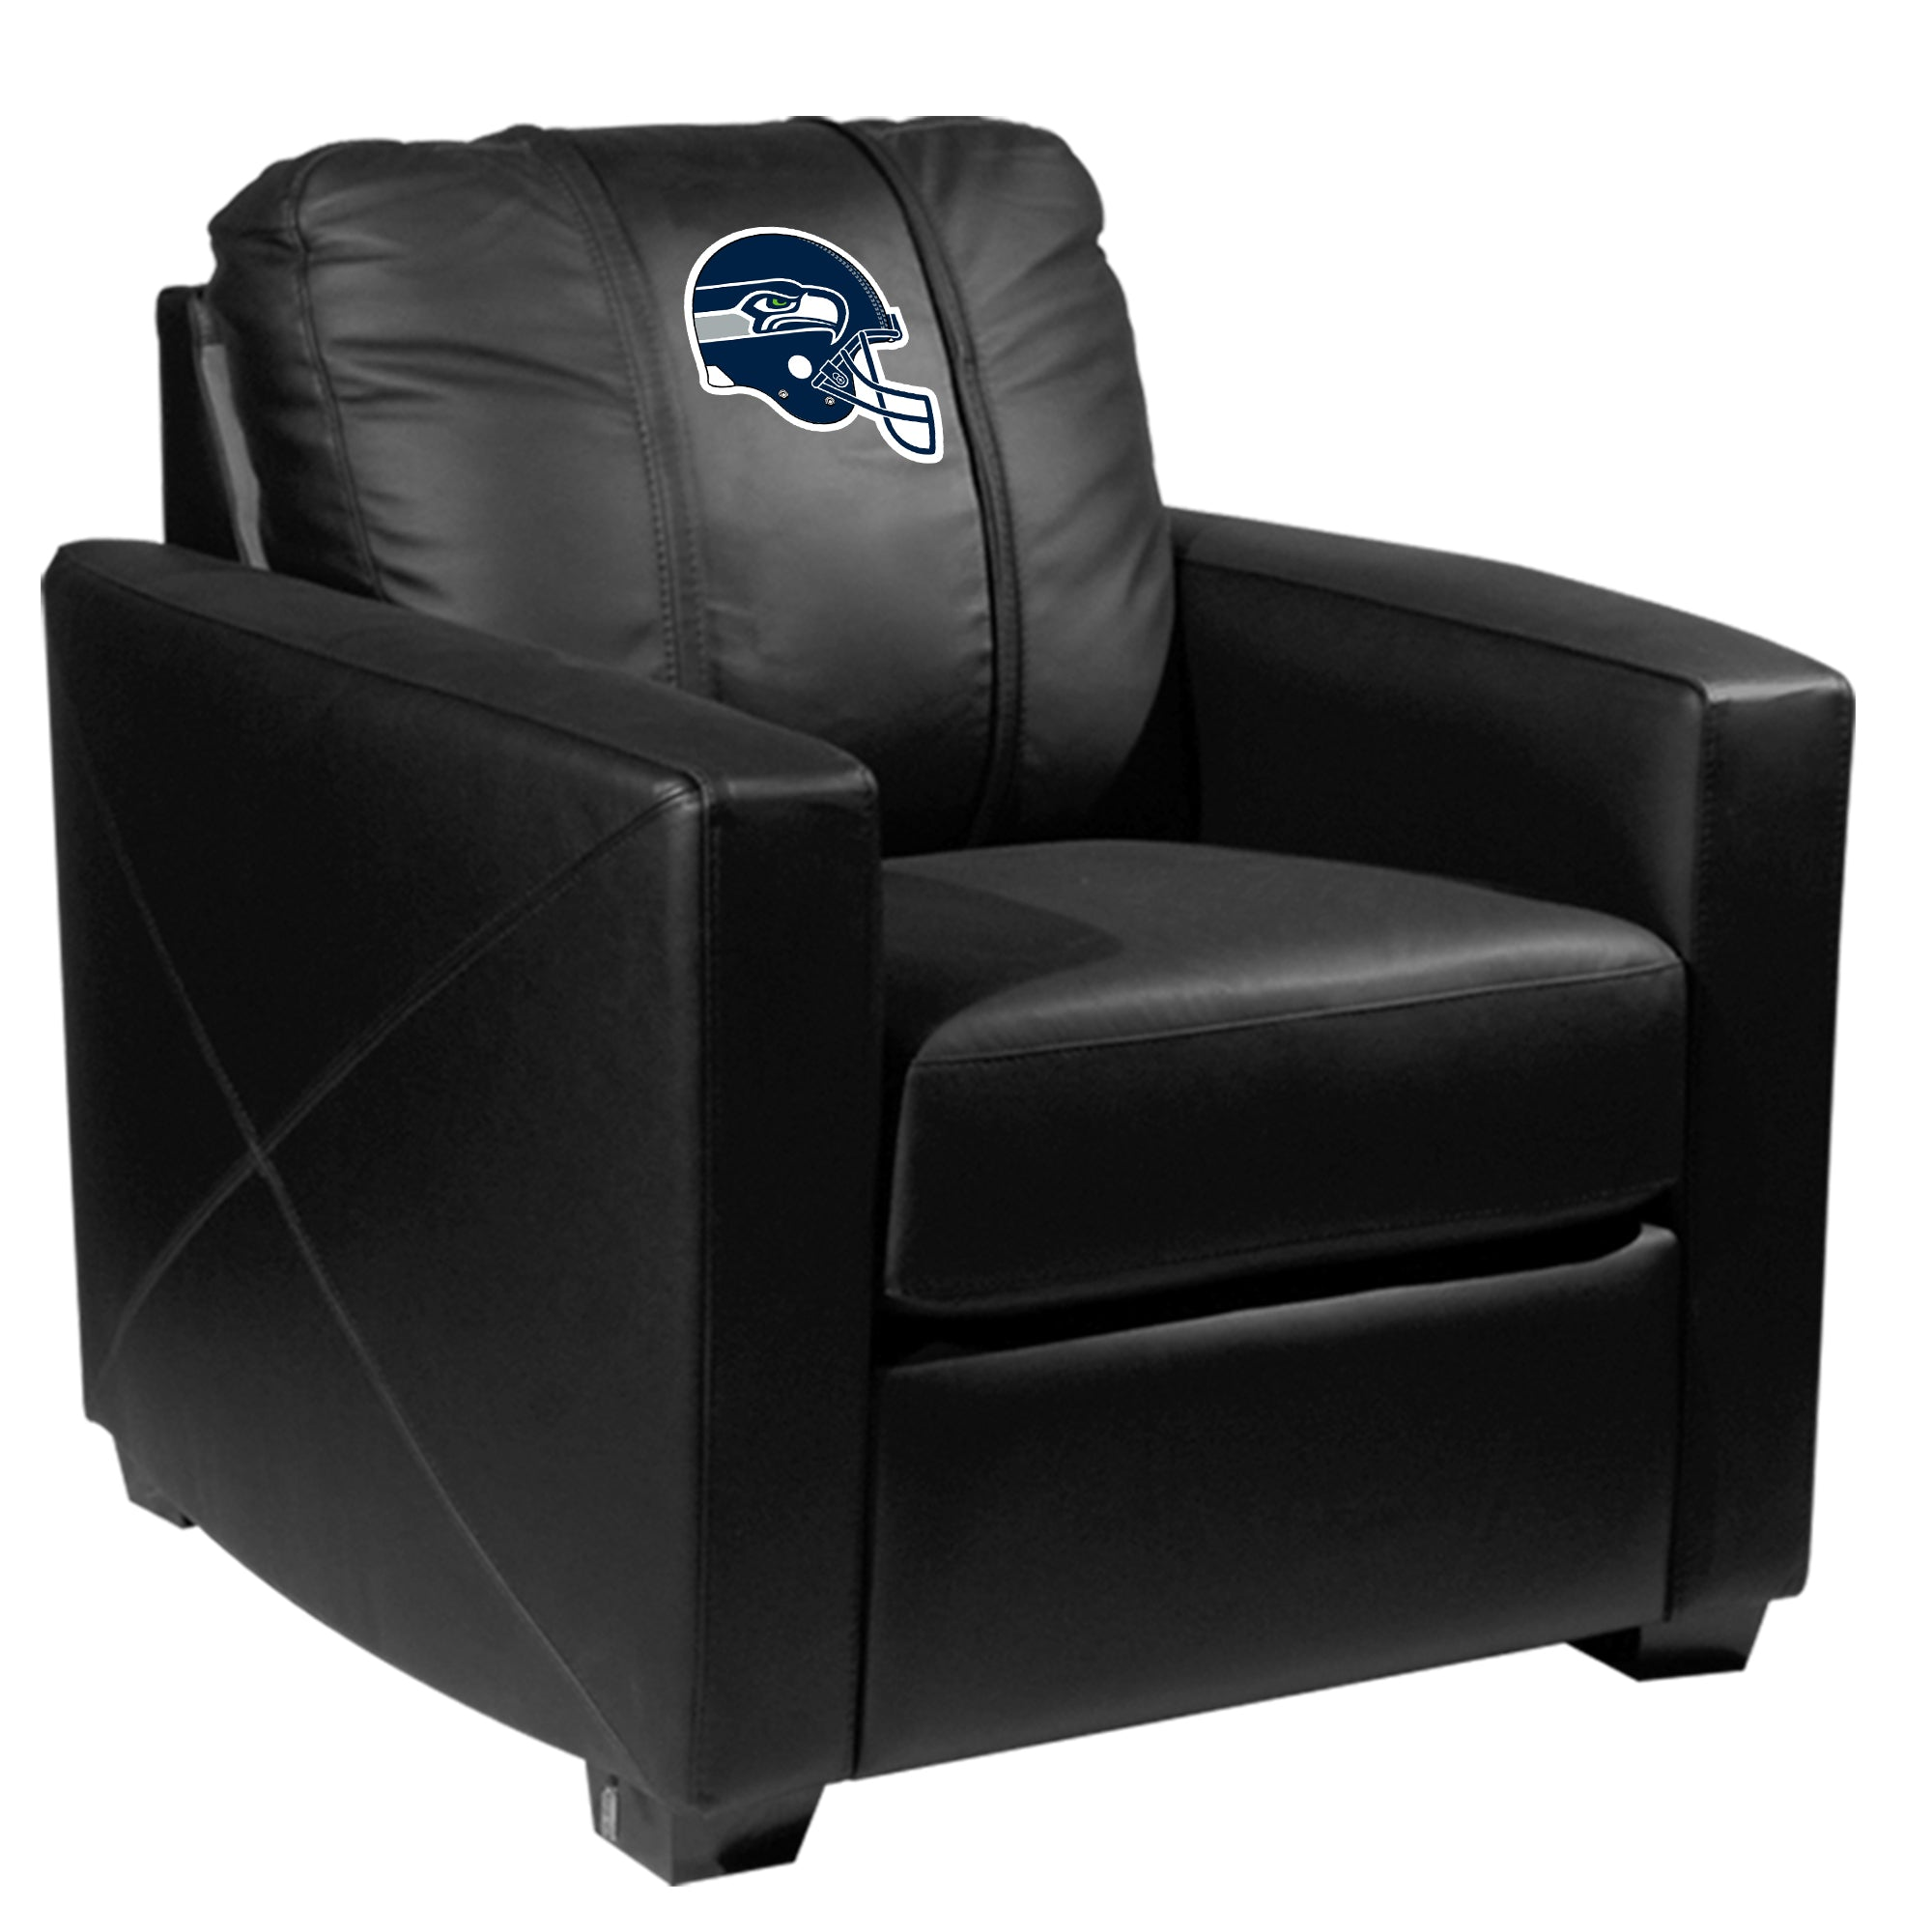 Silver Club Chair with  Seattle Seahawks Helmet Logo